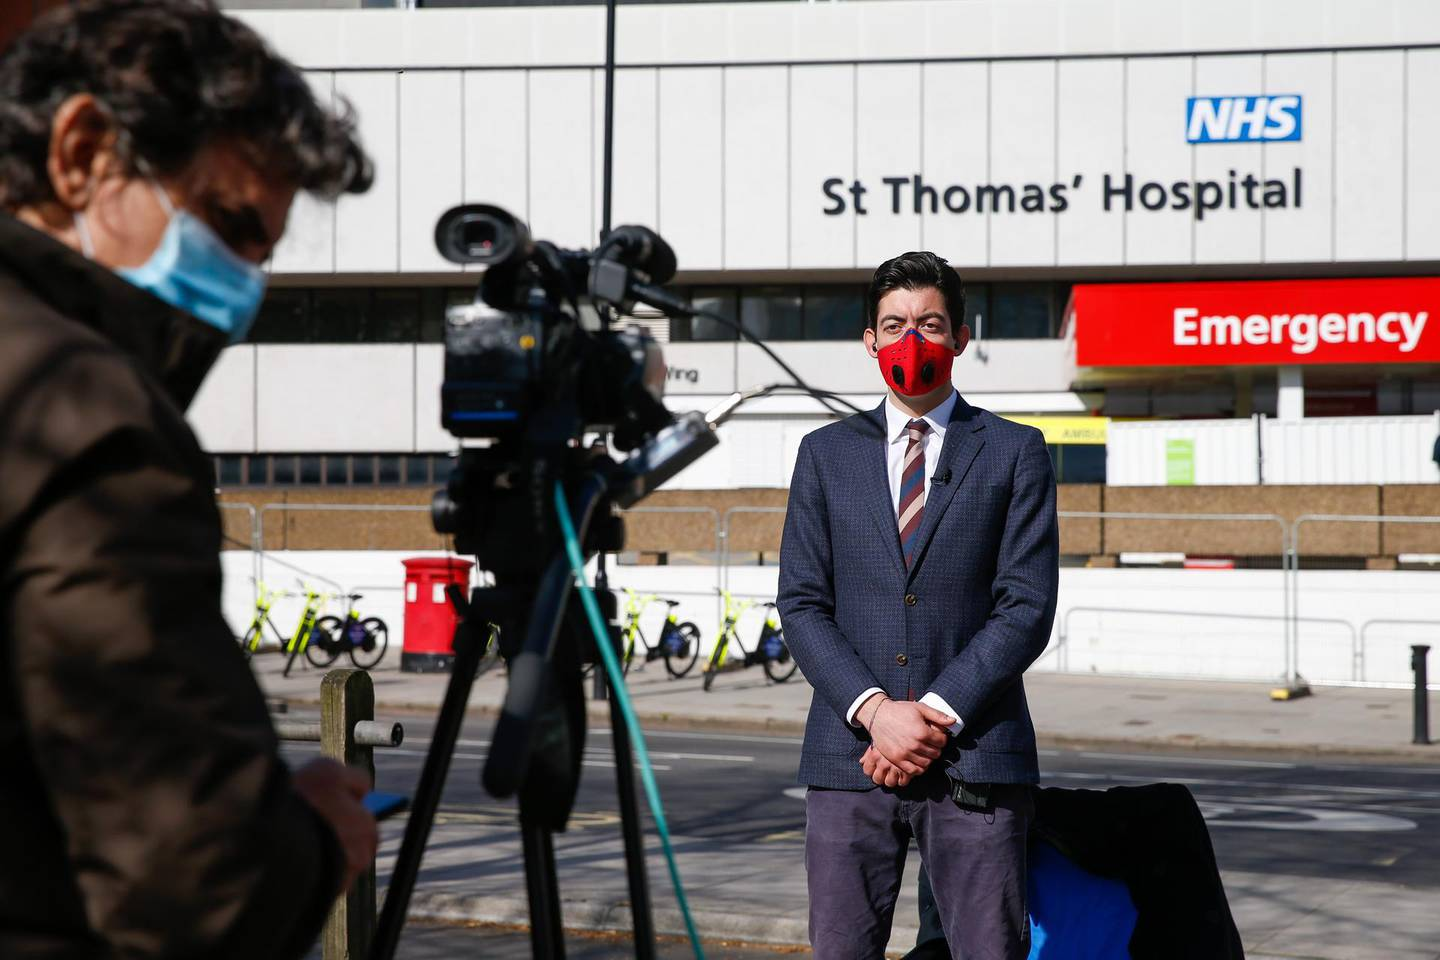 Members of the media wearing protective face masks broadcast from outside St Thomas' Hospital, operated by Guy's and St Thomas' NHS Foundation Trust, where U.K. Prime Minister Boris Johnson is being cared for in intensive care after struggling to shake off covid-19, in London, U.K., on Tuesday, April 7, 2020. The U.K. is facing a leadership crisis as it heads into the peak of the coronavirus pandemic, withJohnsonin intensive care and his government under pressure to get a grip on the outbreak. Photographer: Hollie Adams/Bloomberg